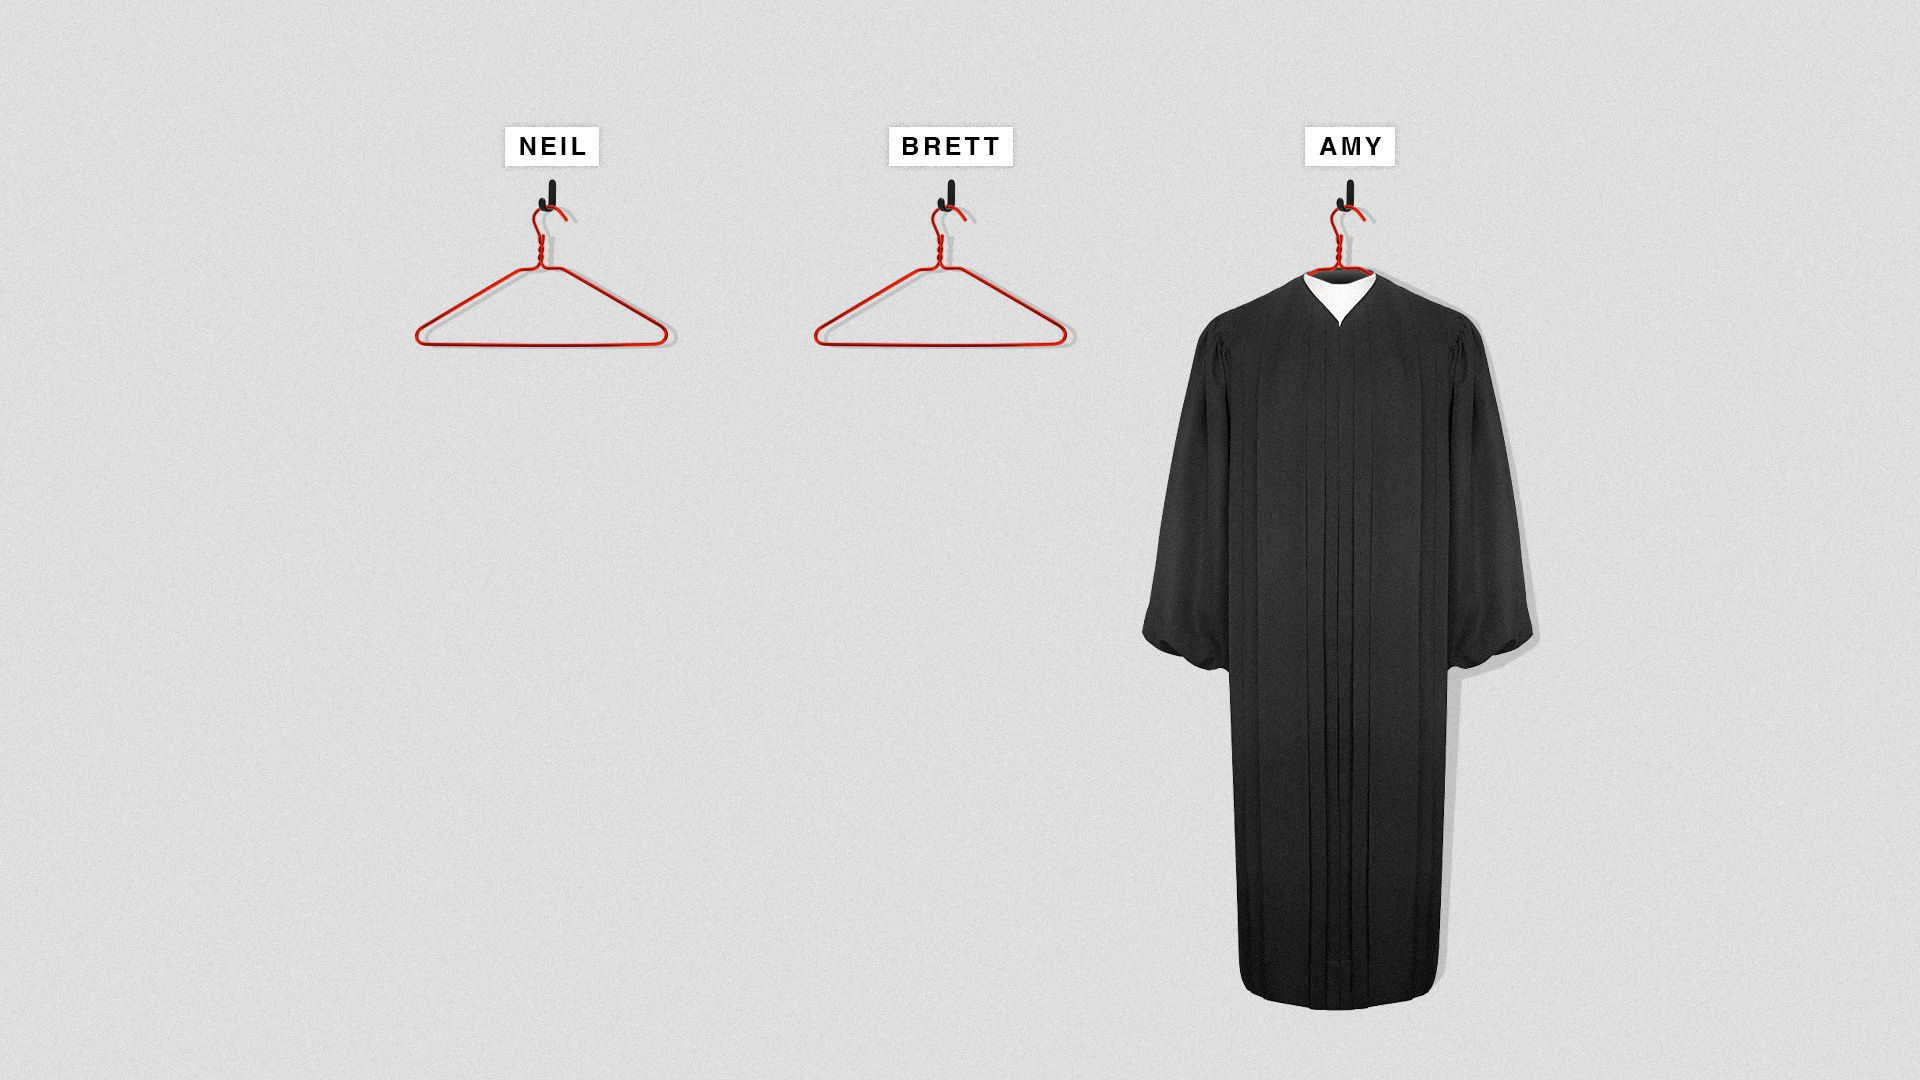 A judge's robe one a wire hanger with a label above reading 'Amy'